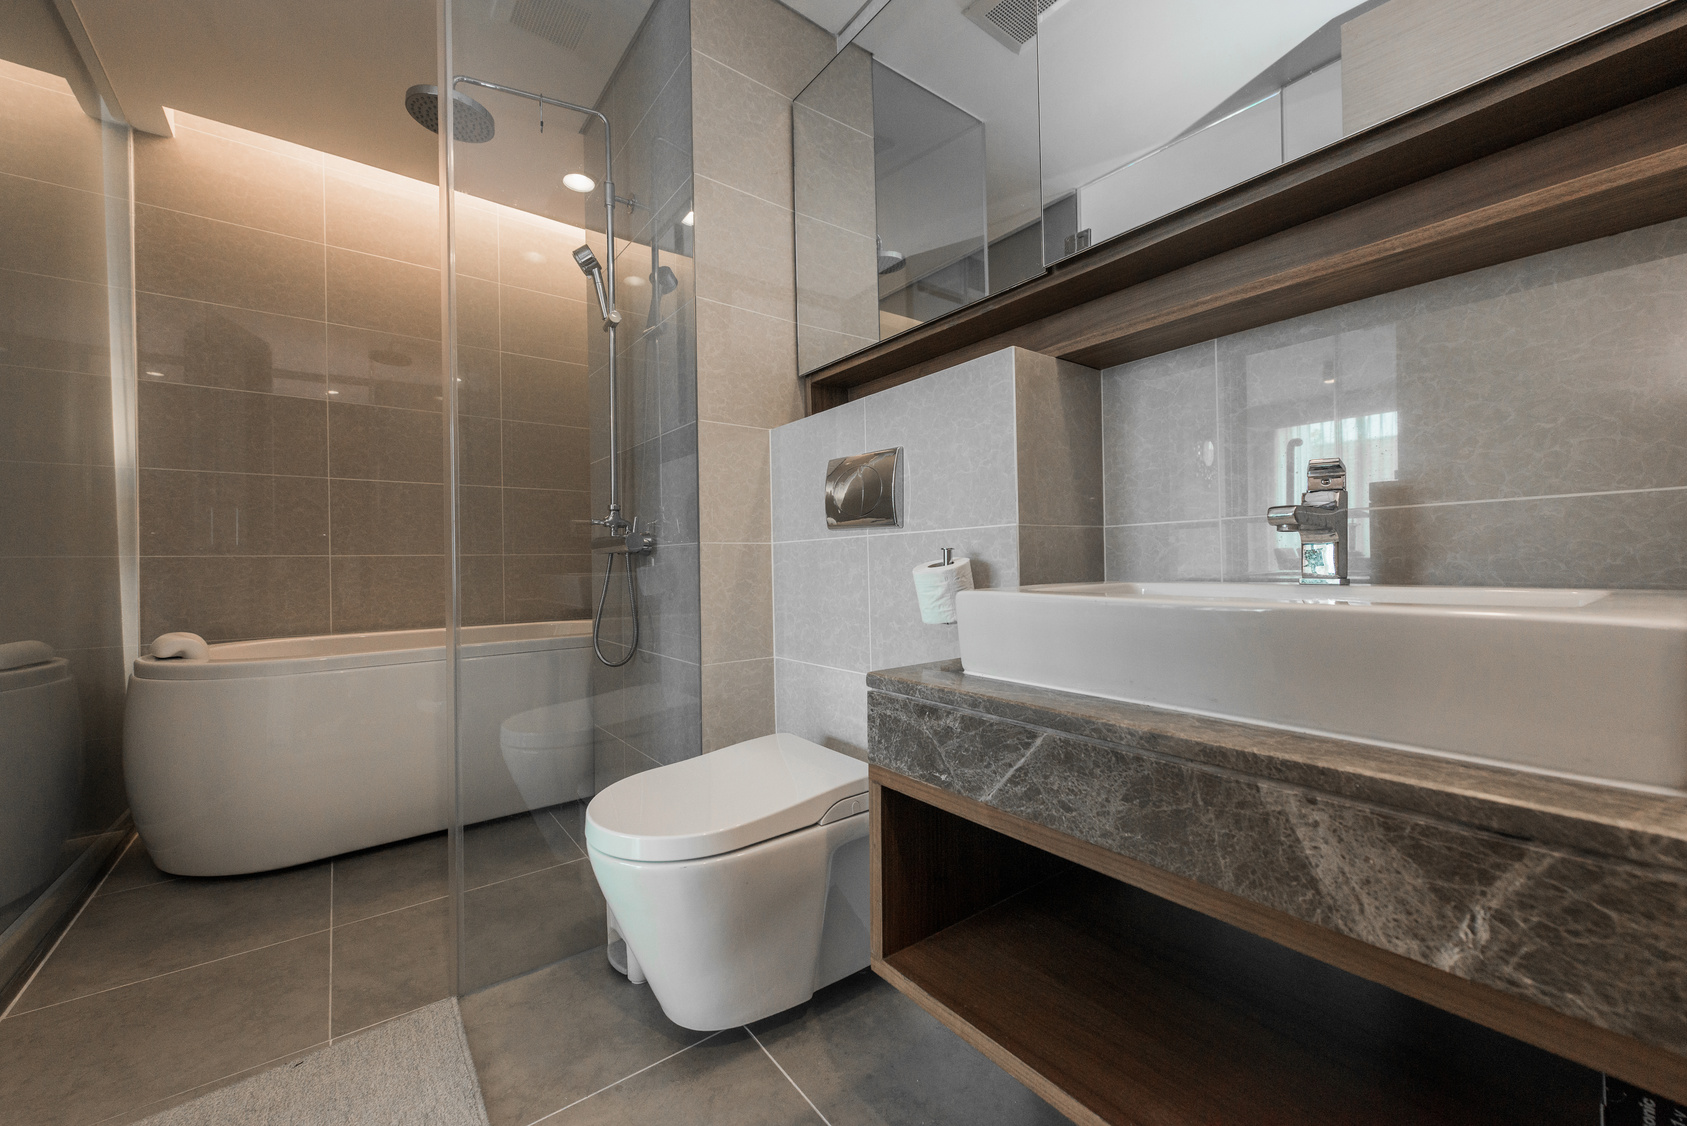 How to pull off an epic bathroom remodel on a budget for Remodeling your bathroom on a budget